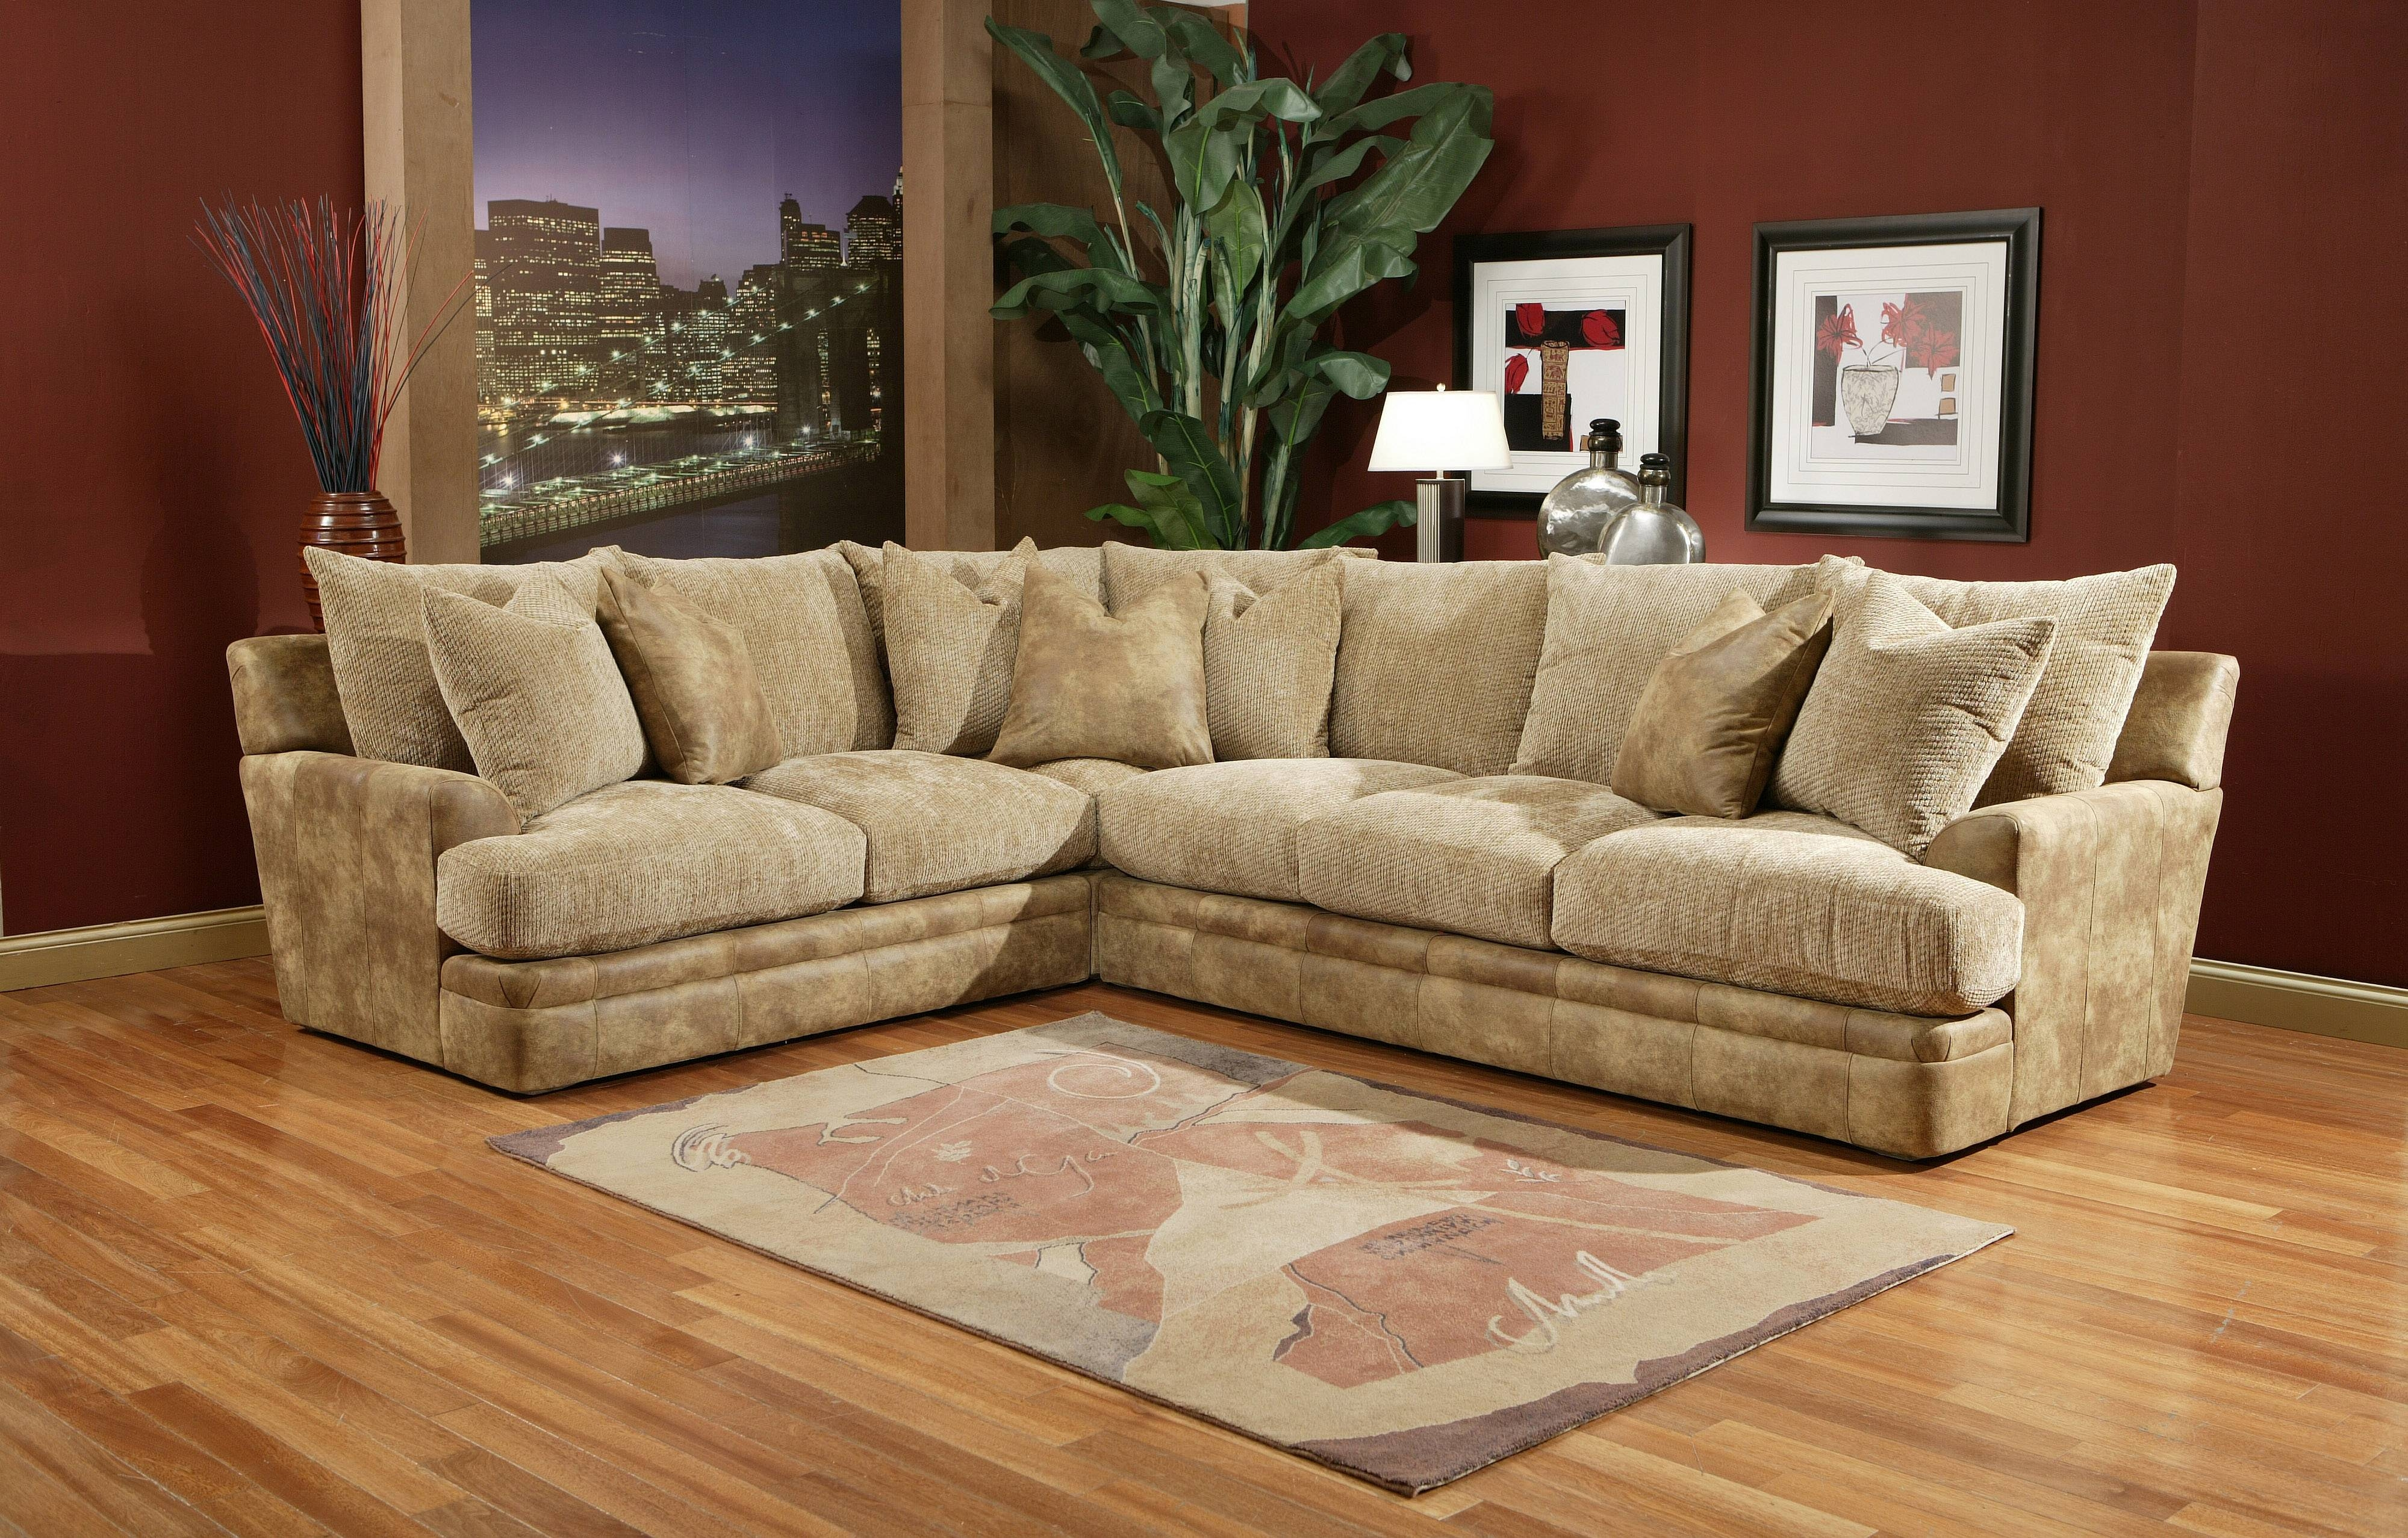 Sofas Center : Cozyown Filled Sectional Sofa For Find Small Sofas within Down Filled Sofa Sectional (Image 19 of 25)